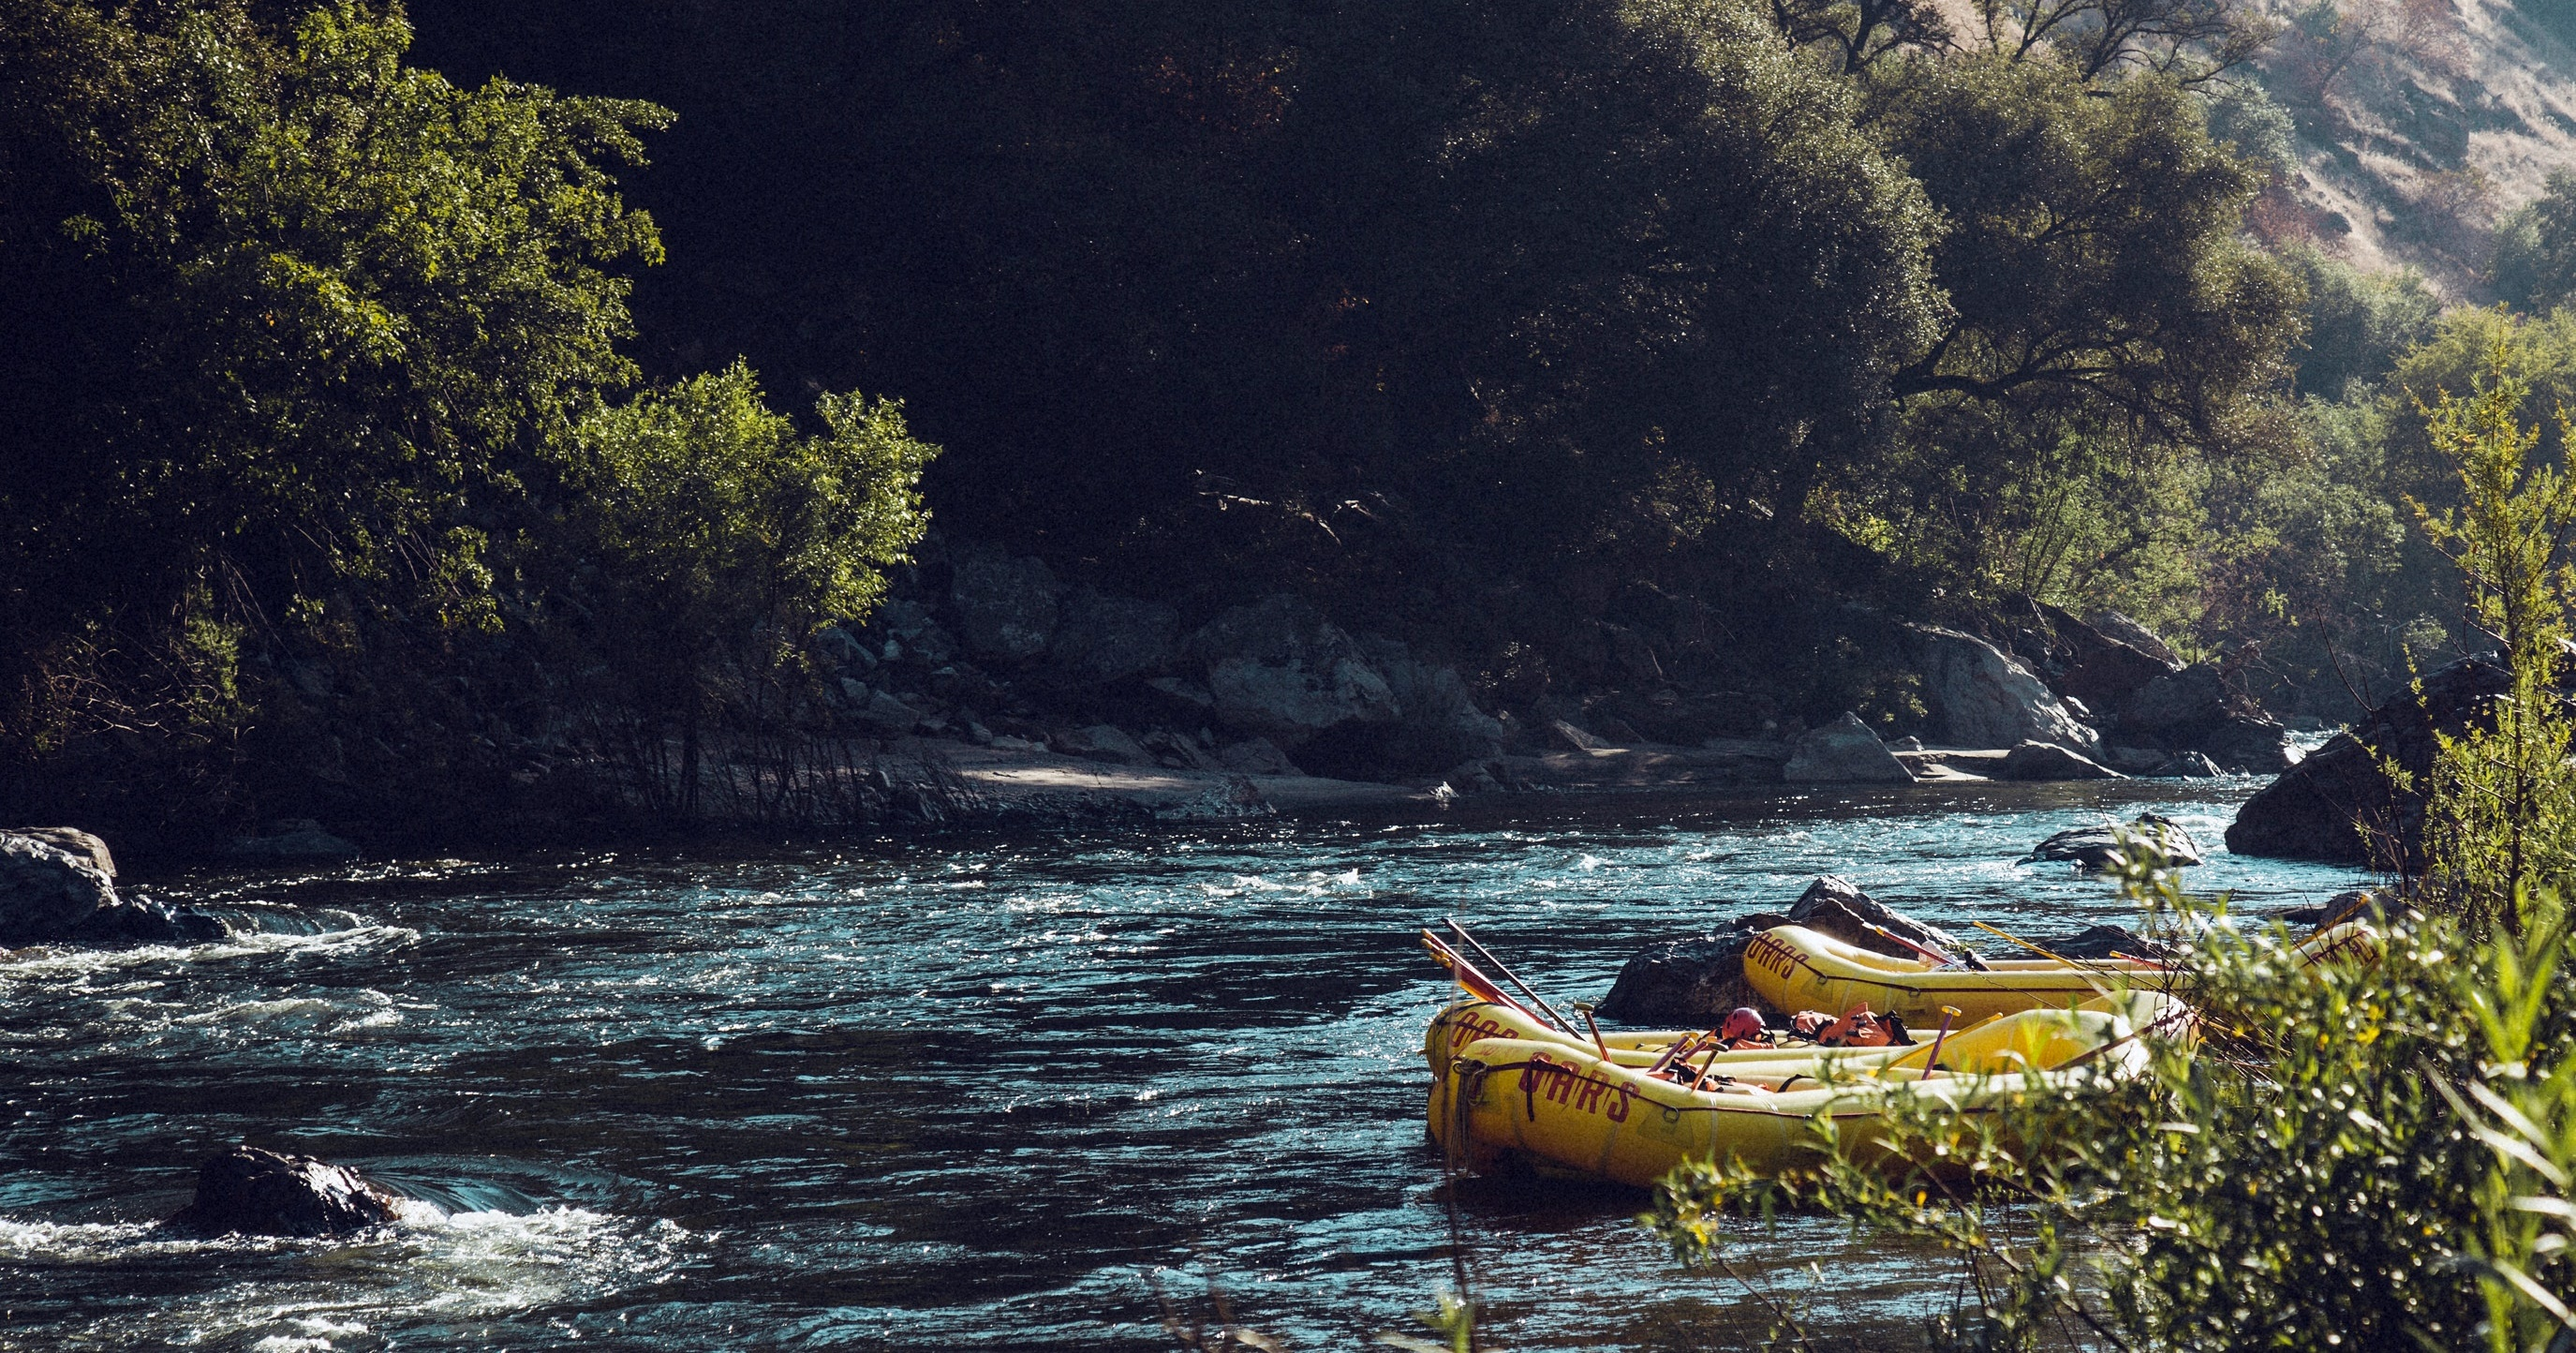 white water rafting instagram captions, Yellow rafts on a river, fitness